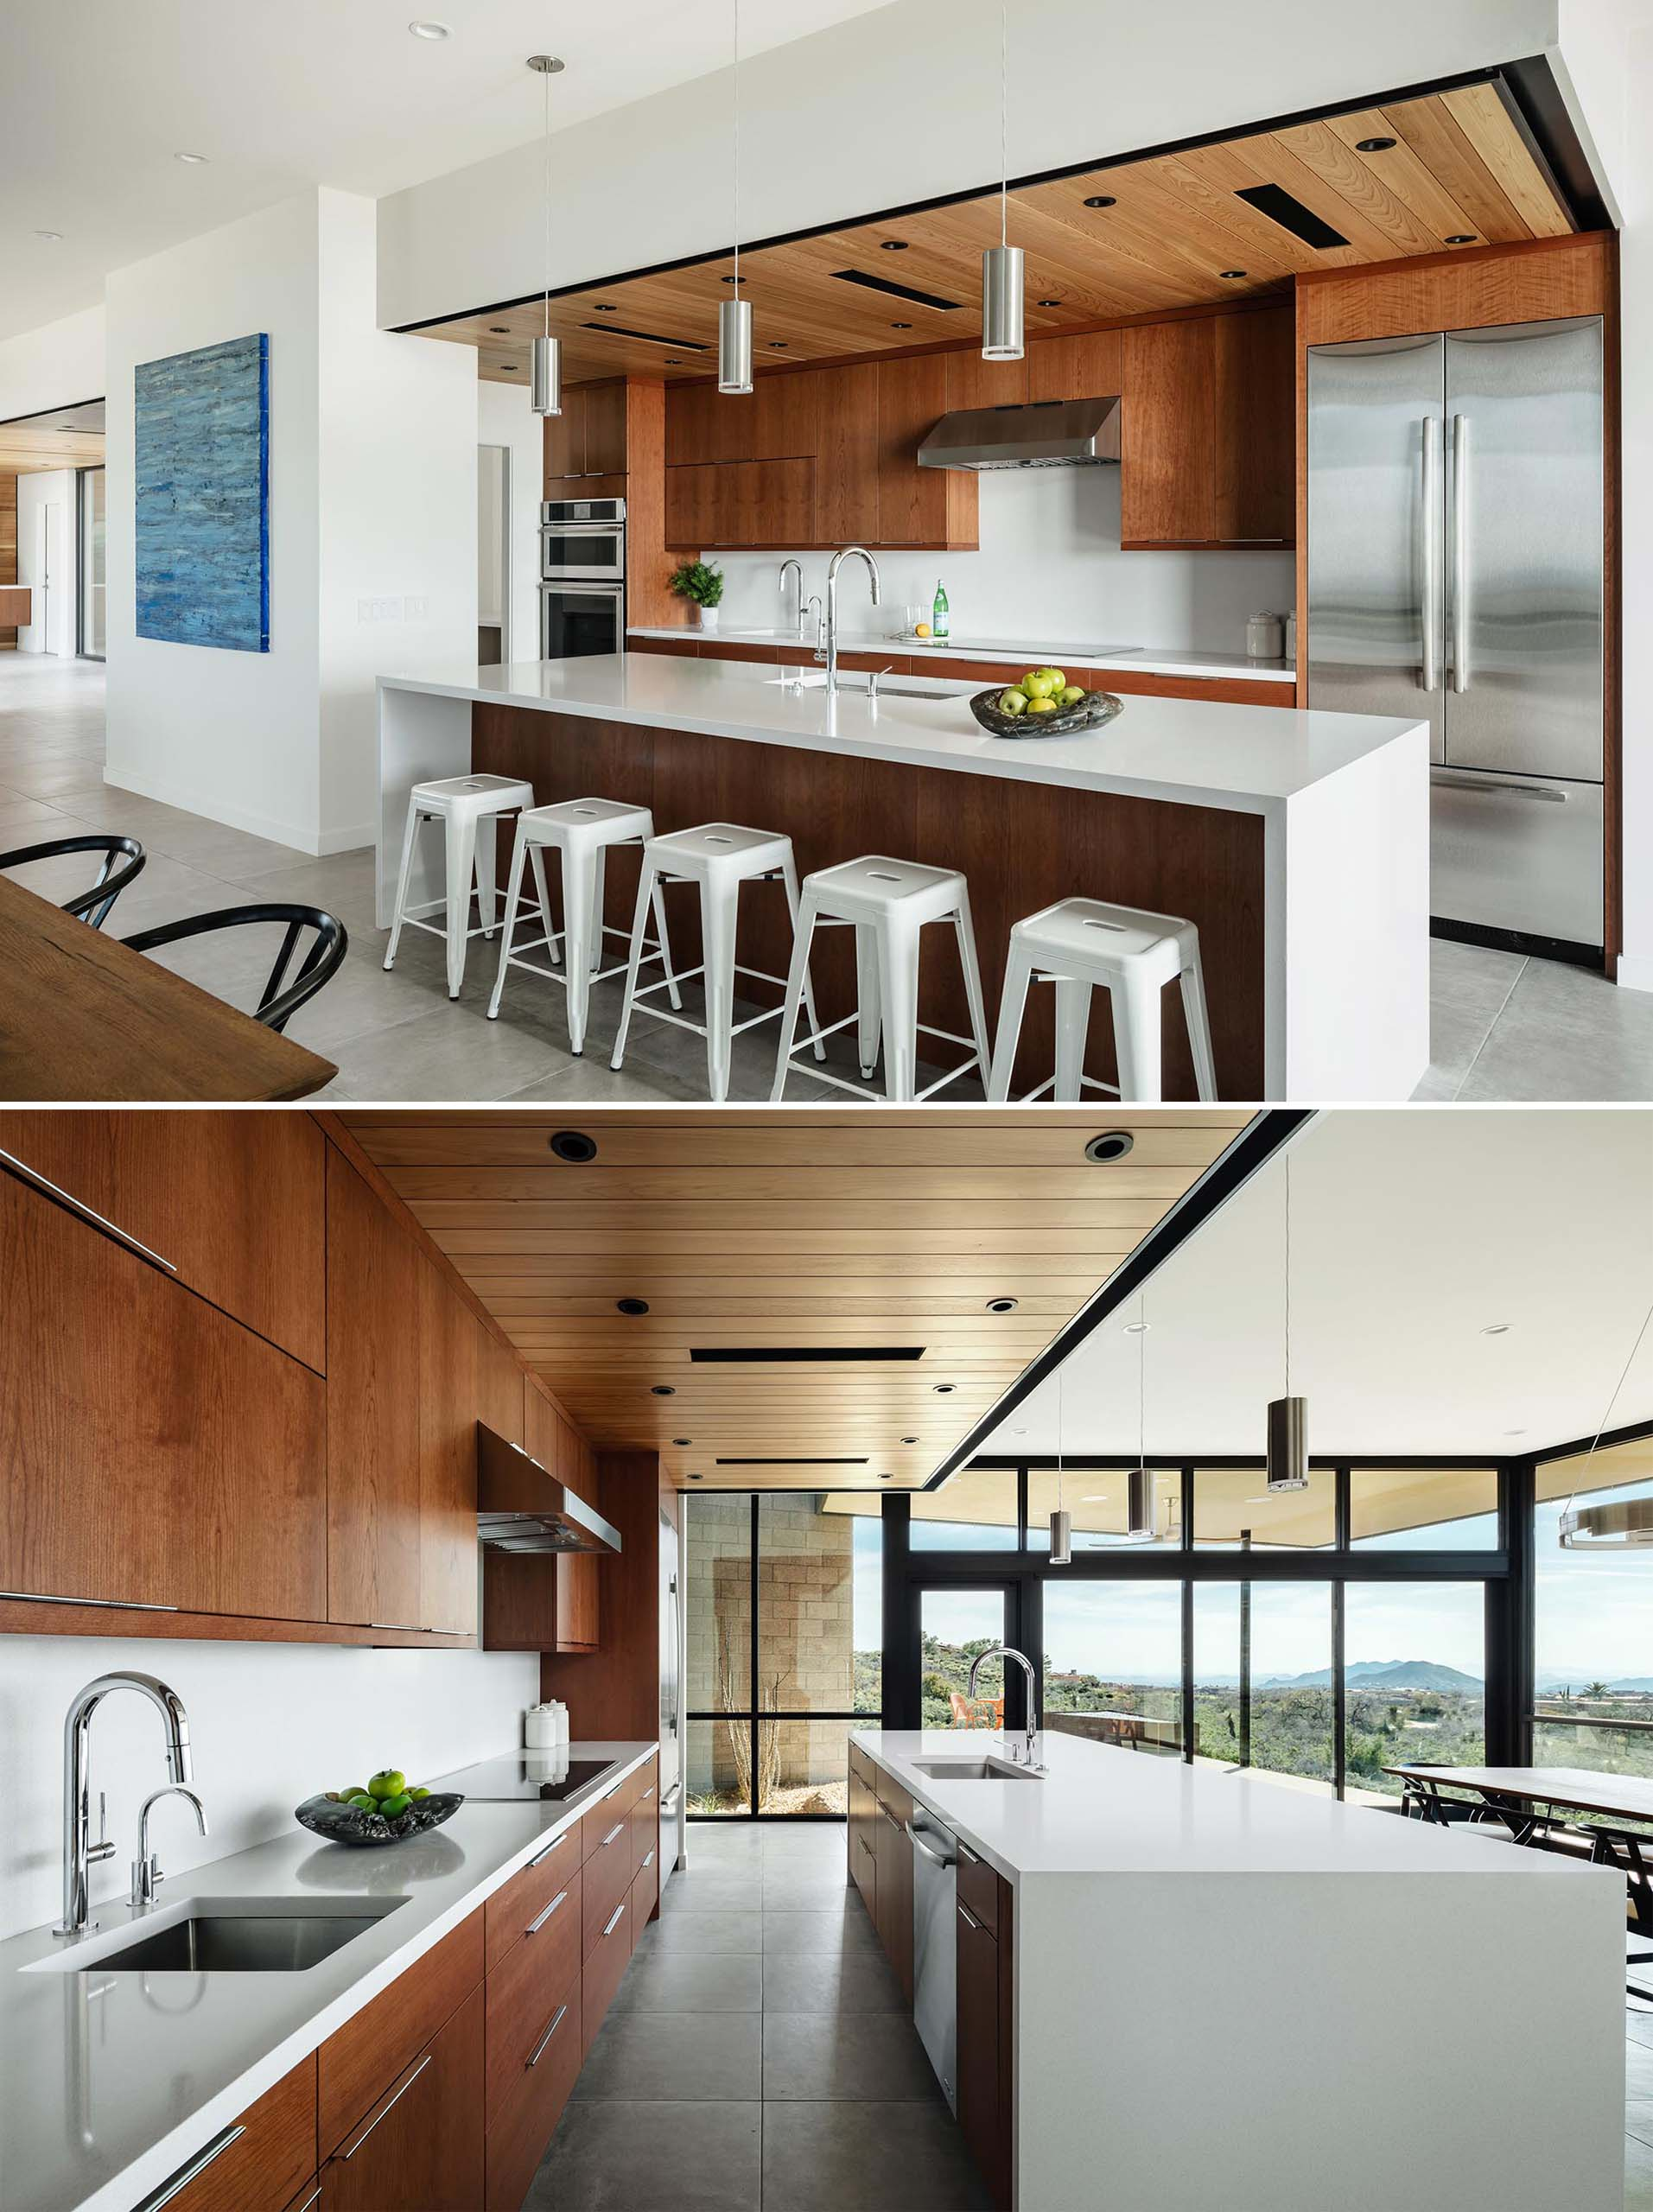 This modern kitchen features a floating cedar ceiling that aligns with the entry ceiling beyond. There's also cherry veneer cabinets and quartz countertops.